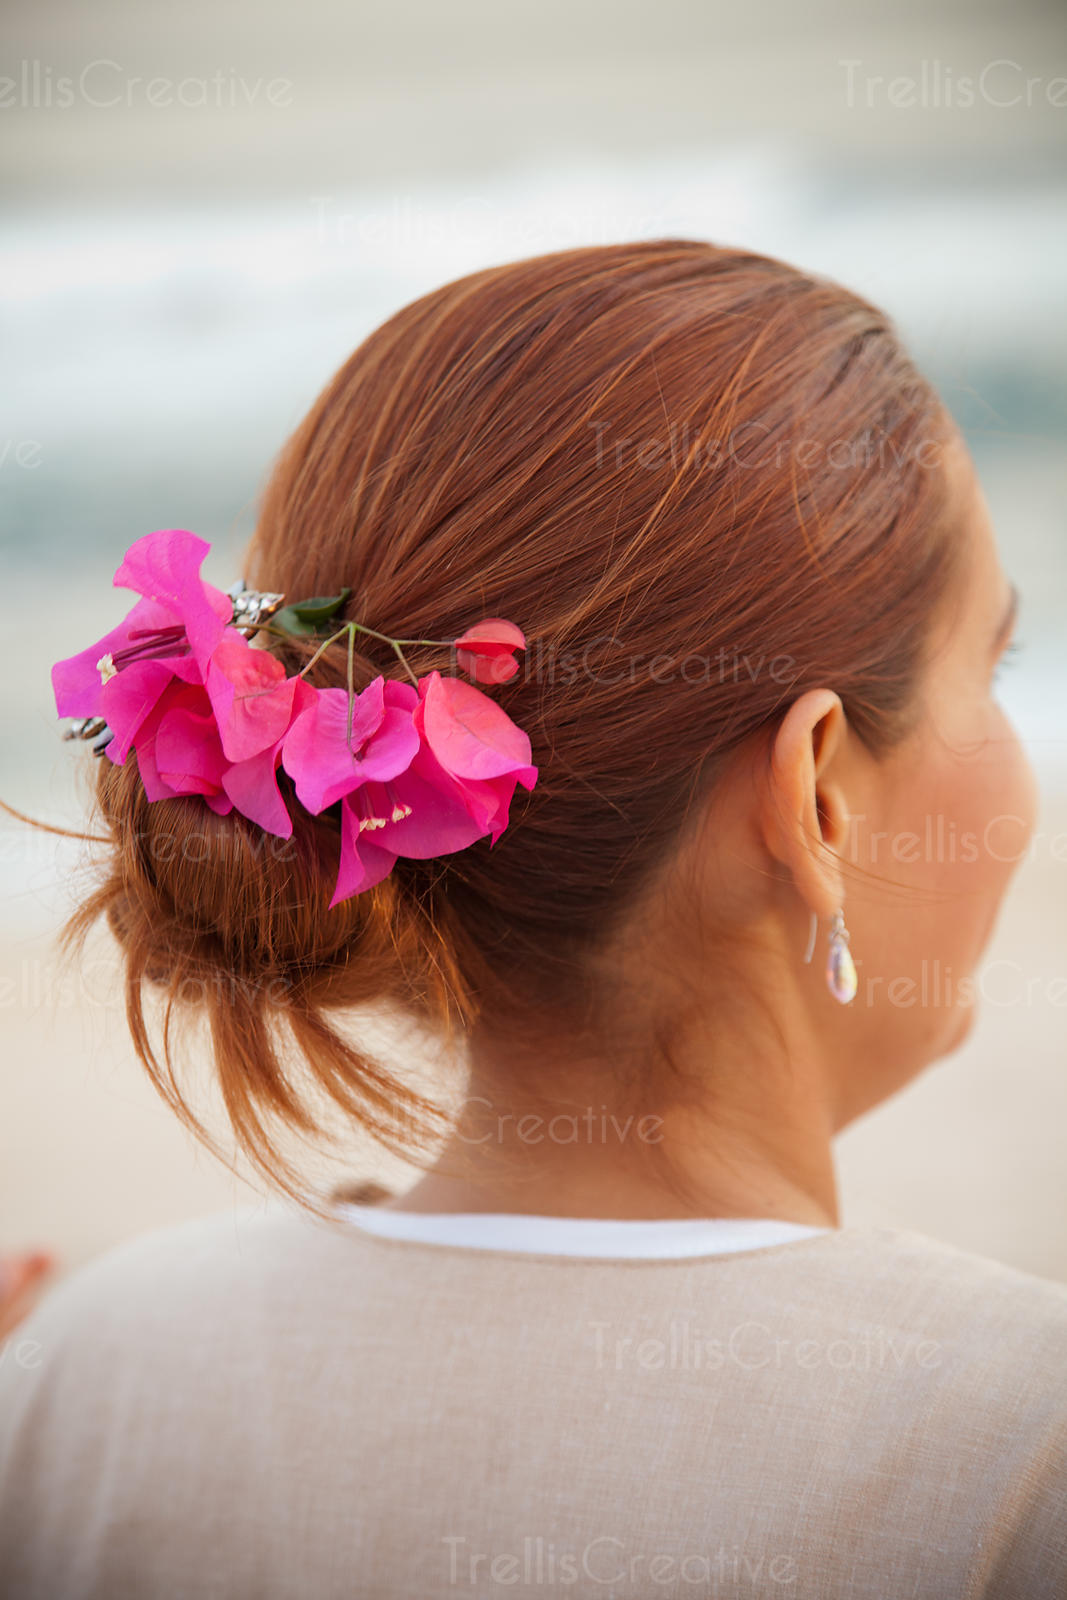 Bougainvillea flowers decorated in a young woman's hair